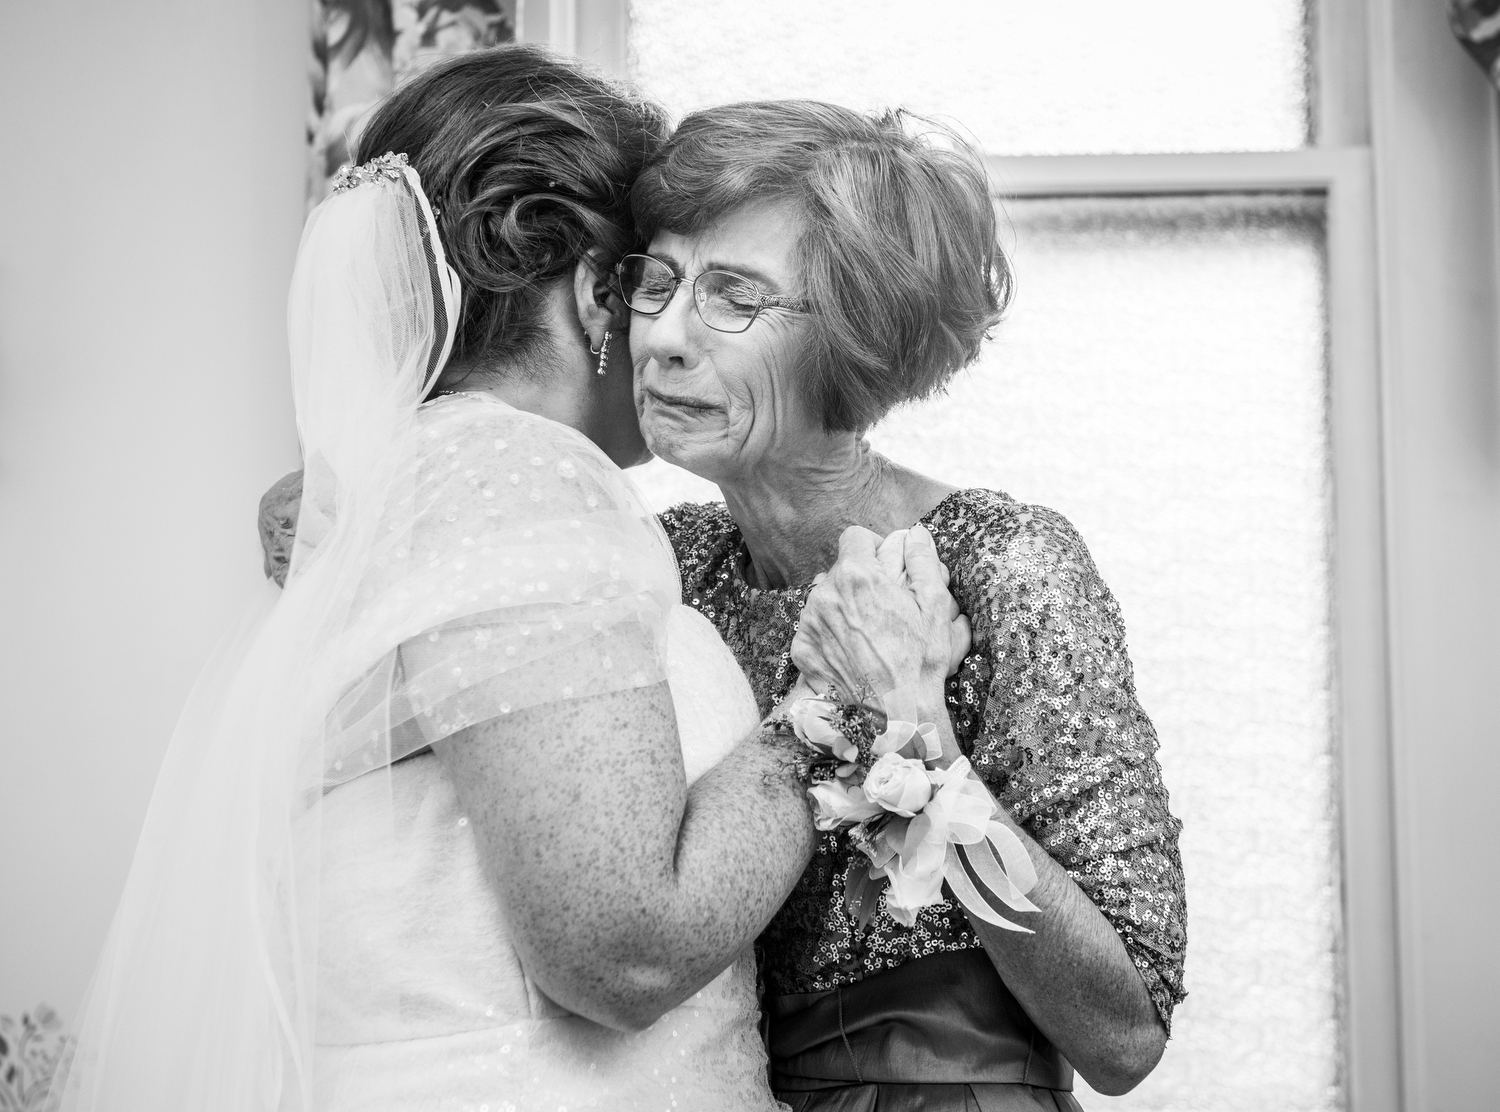 Gallery-moments-nix-weddings-16A.jpg